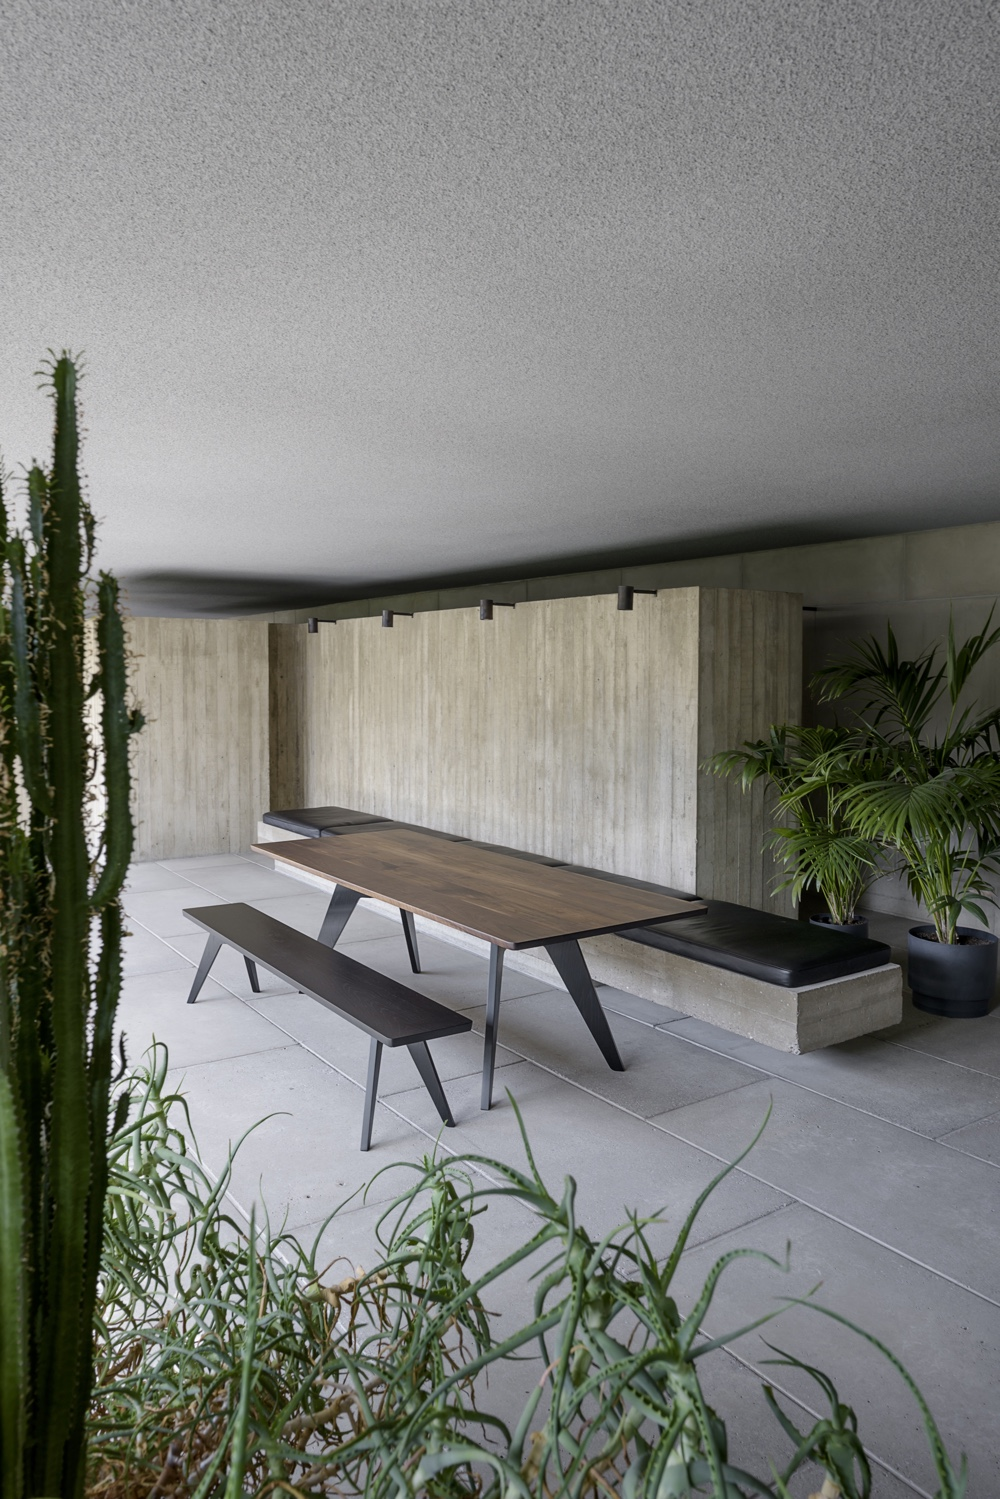 Lavitta table and bench I